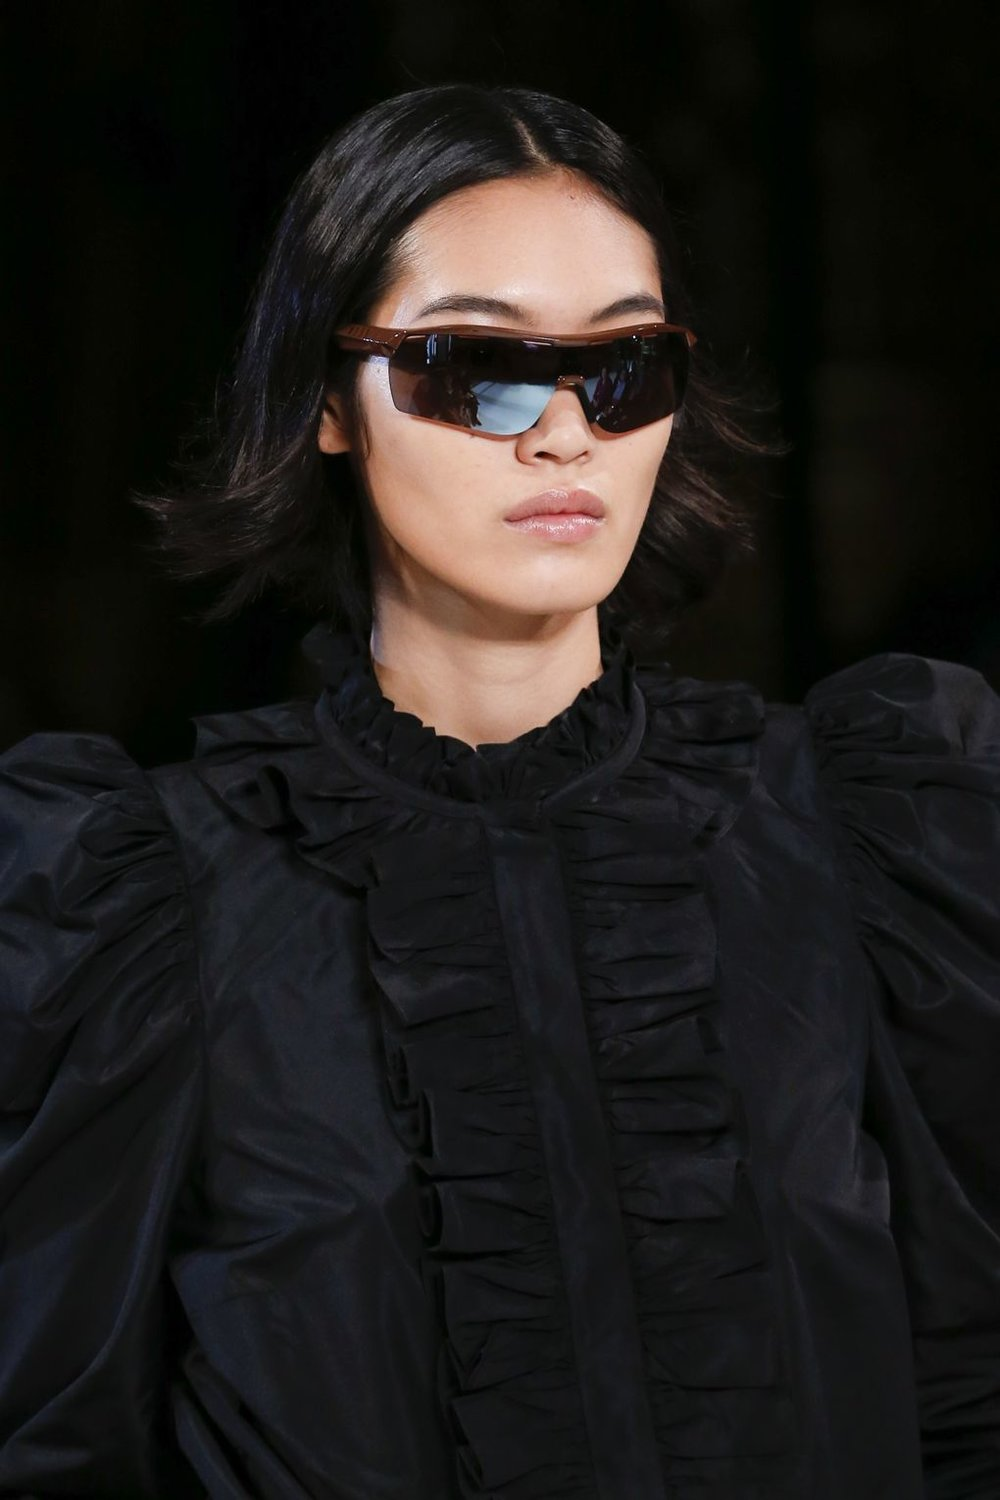 Stella Mccartney 2.jpg